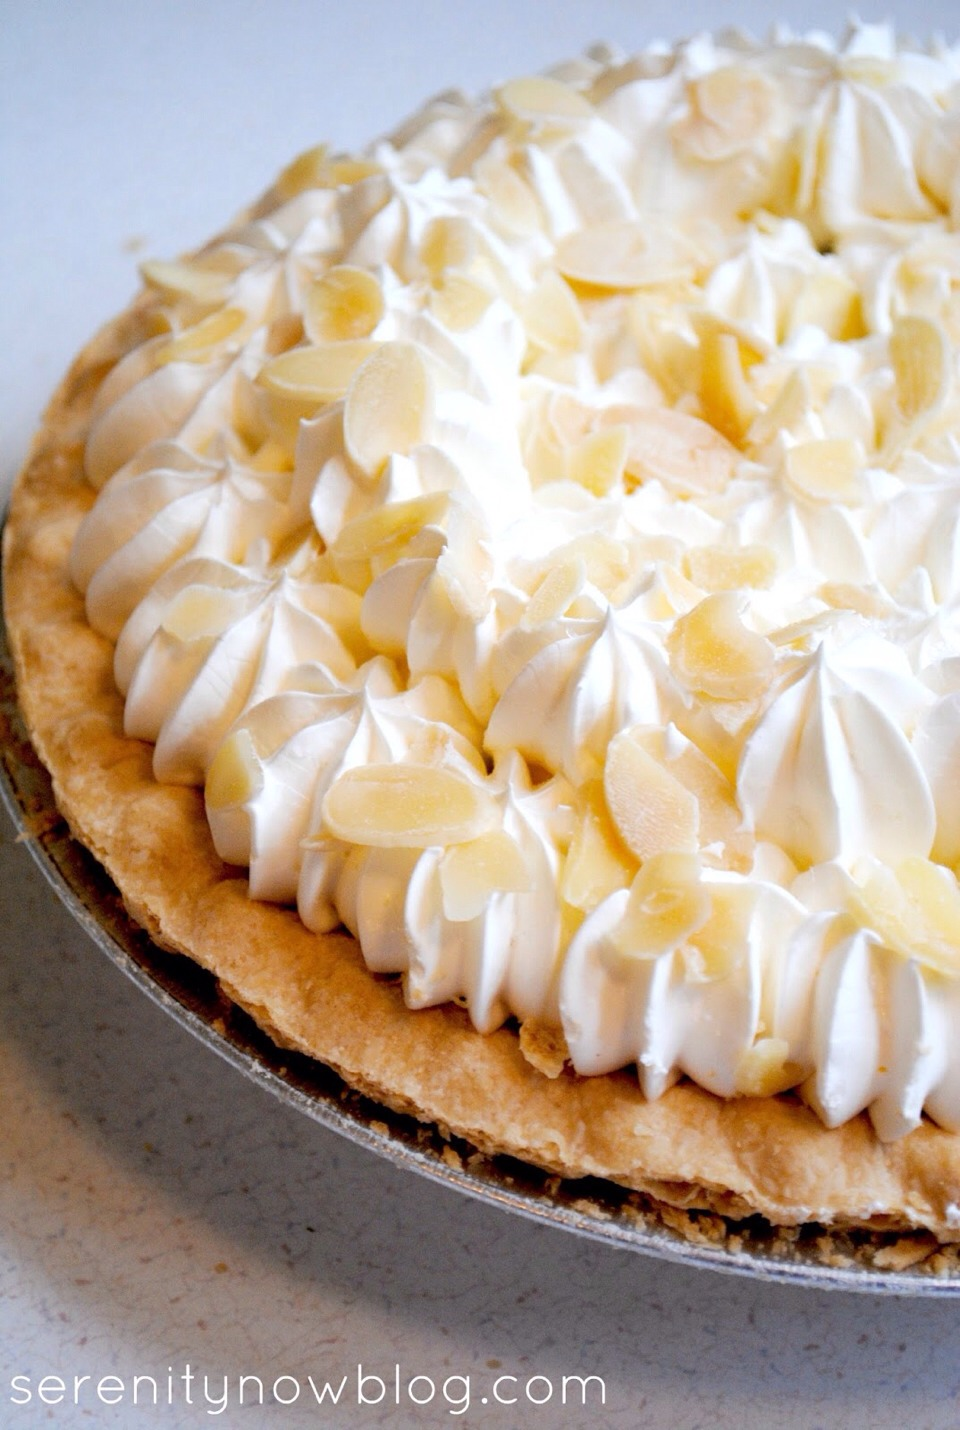 This quick recipe is chock-full of fruits that make this banana split pie naturally sweet. Whip up this simple dessert if you're pressed for time and enjoy.